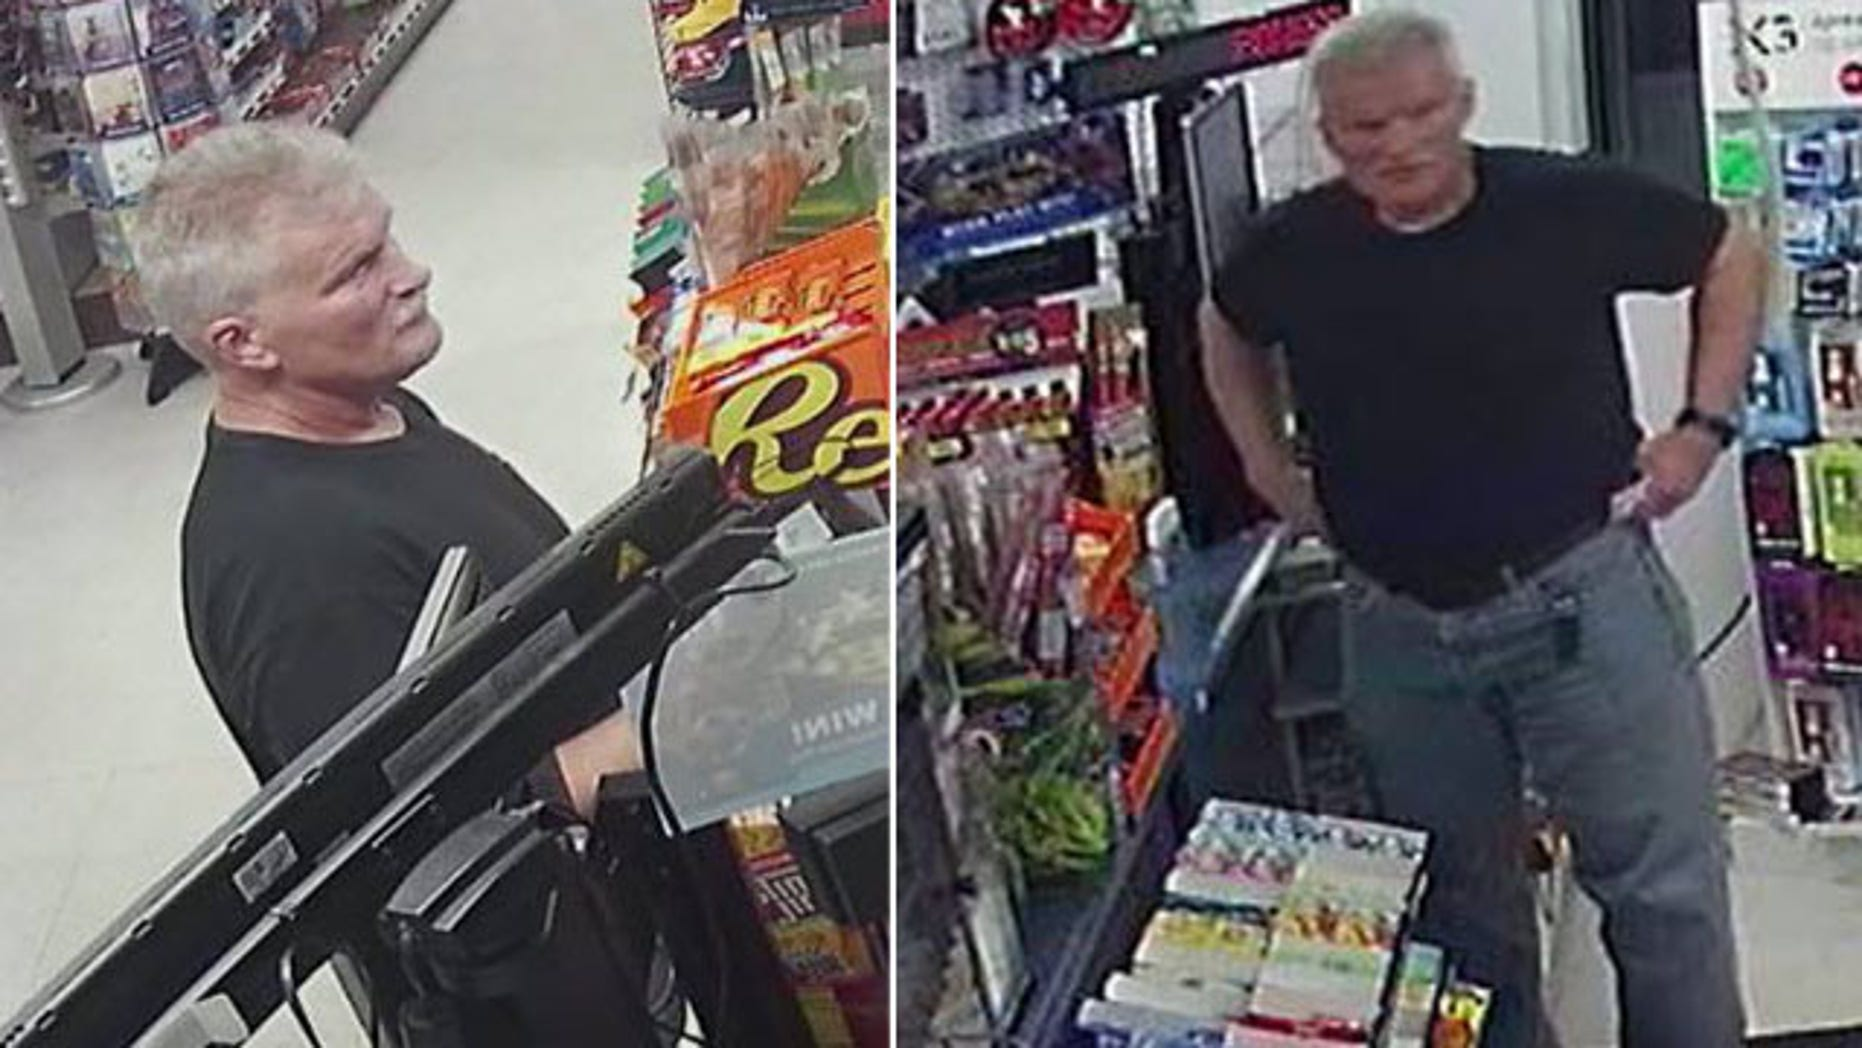 This undated image shows a serial robber who has stolen from at least seven Dollar Tree stores